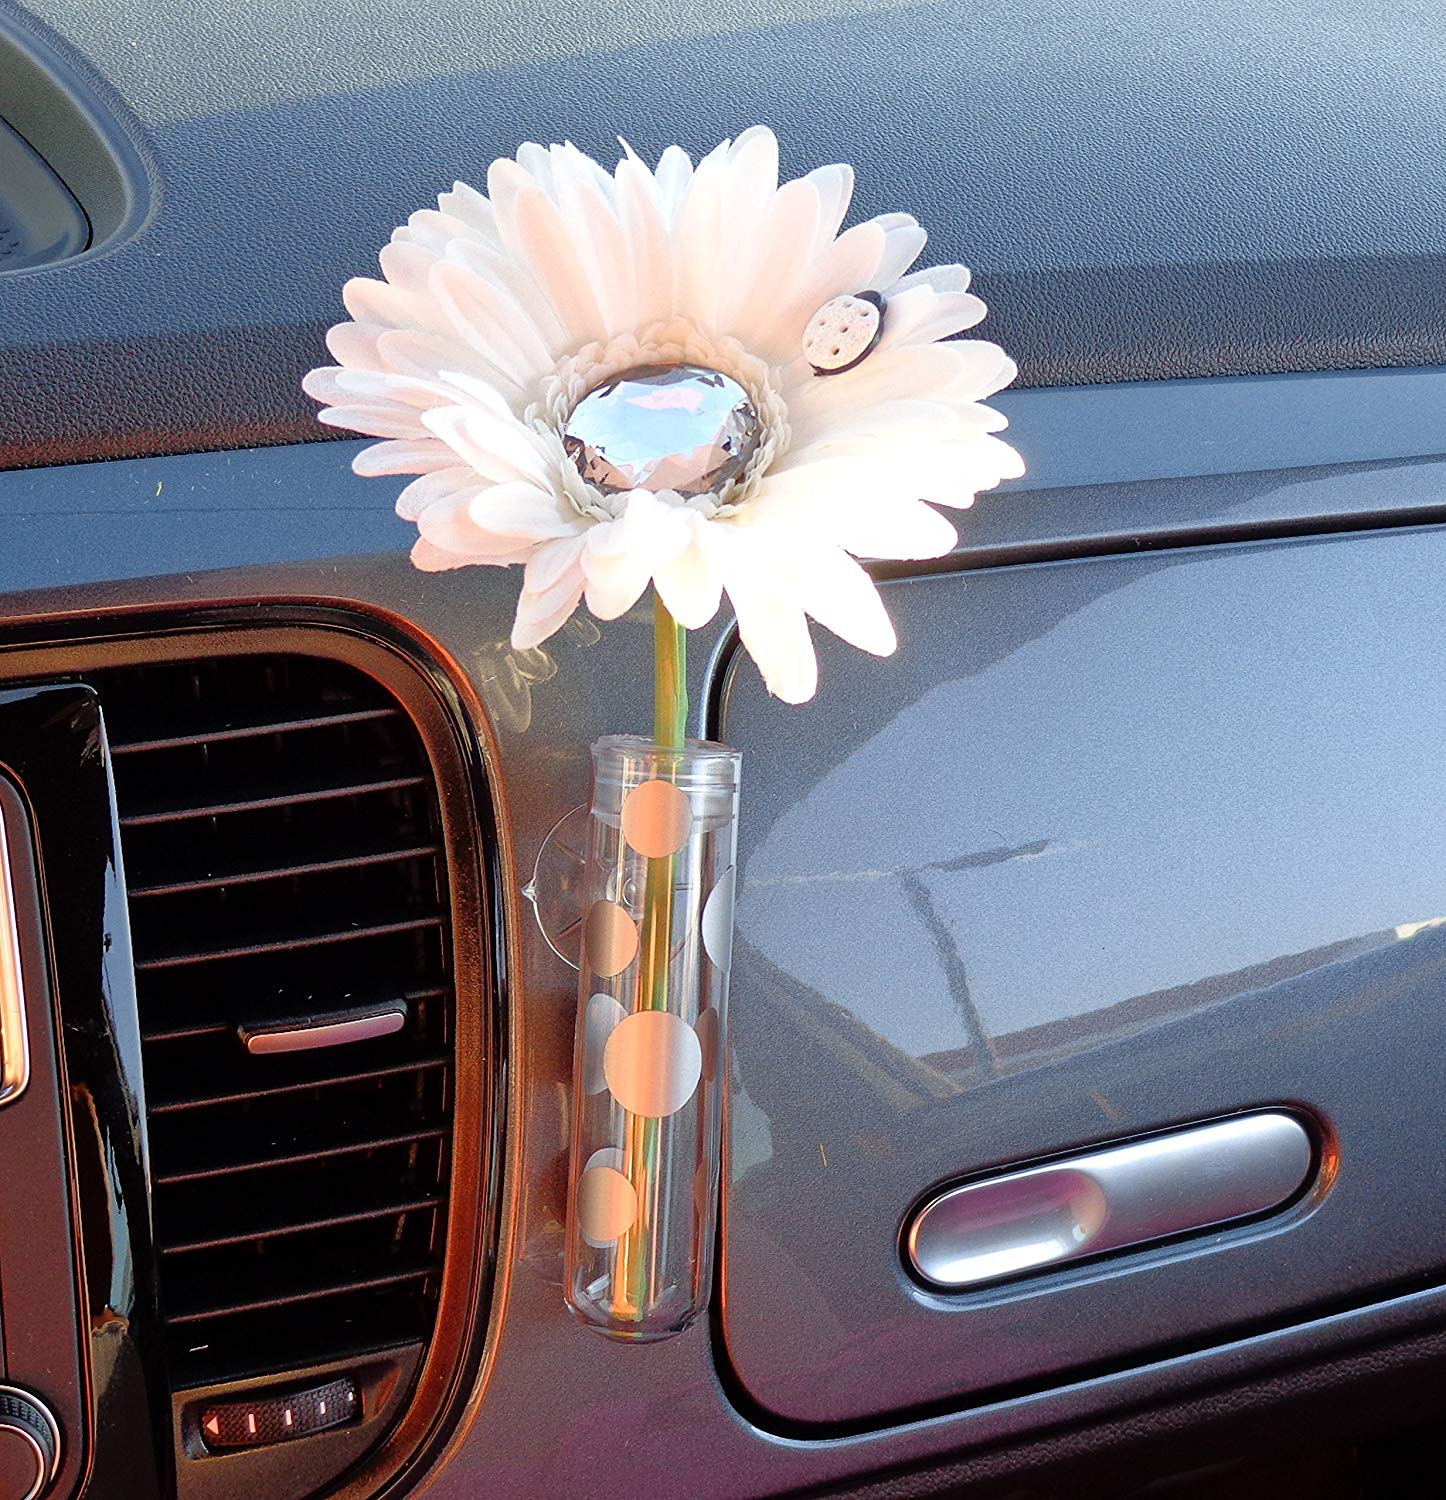 volkswagen bug flower vases of amazon com vw beetle flower white and diamond bling daisy with for amazon com vw beetle flower white and diamond bling daisy with universal vase automotive